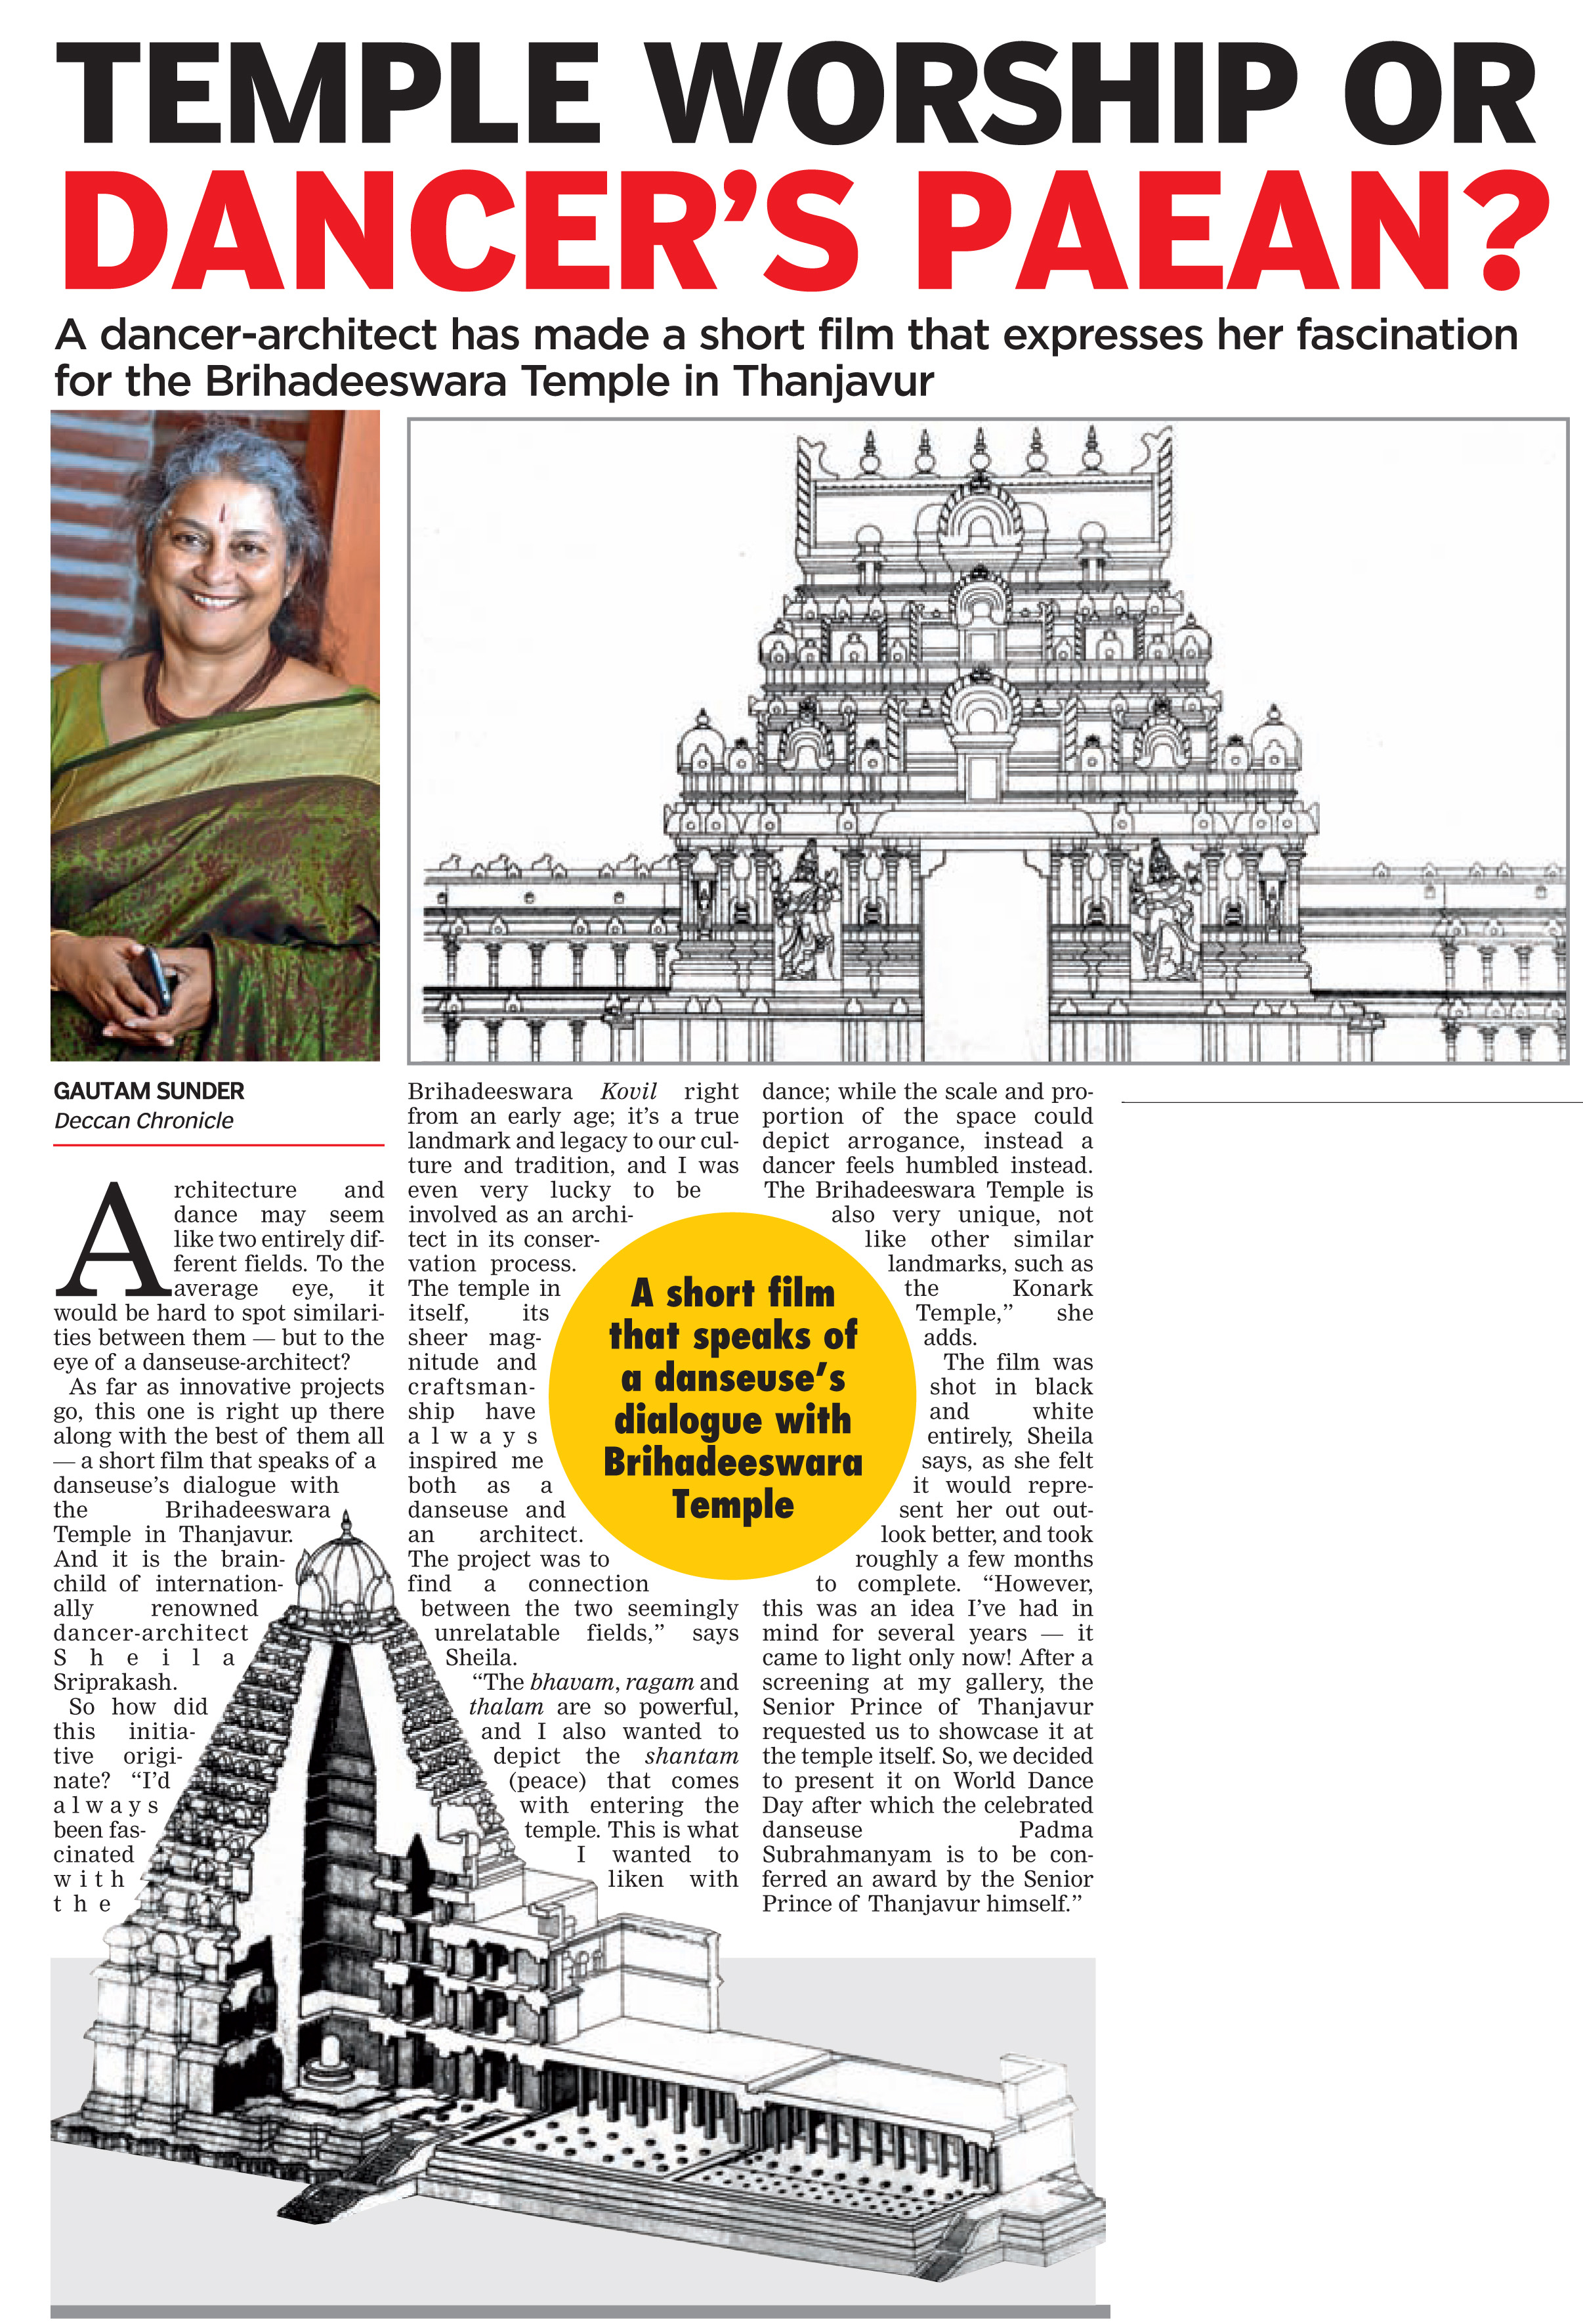 Deccan Chronicle: TEMPLE WORSHIP OR DANCER'S PAEAN?